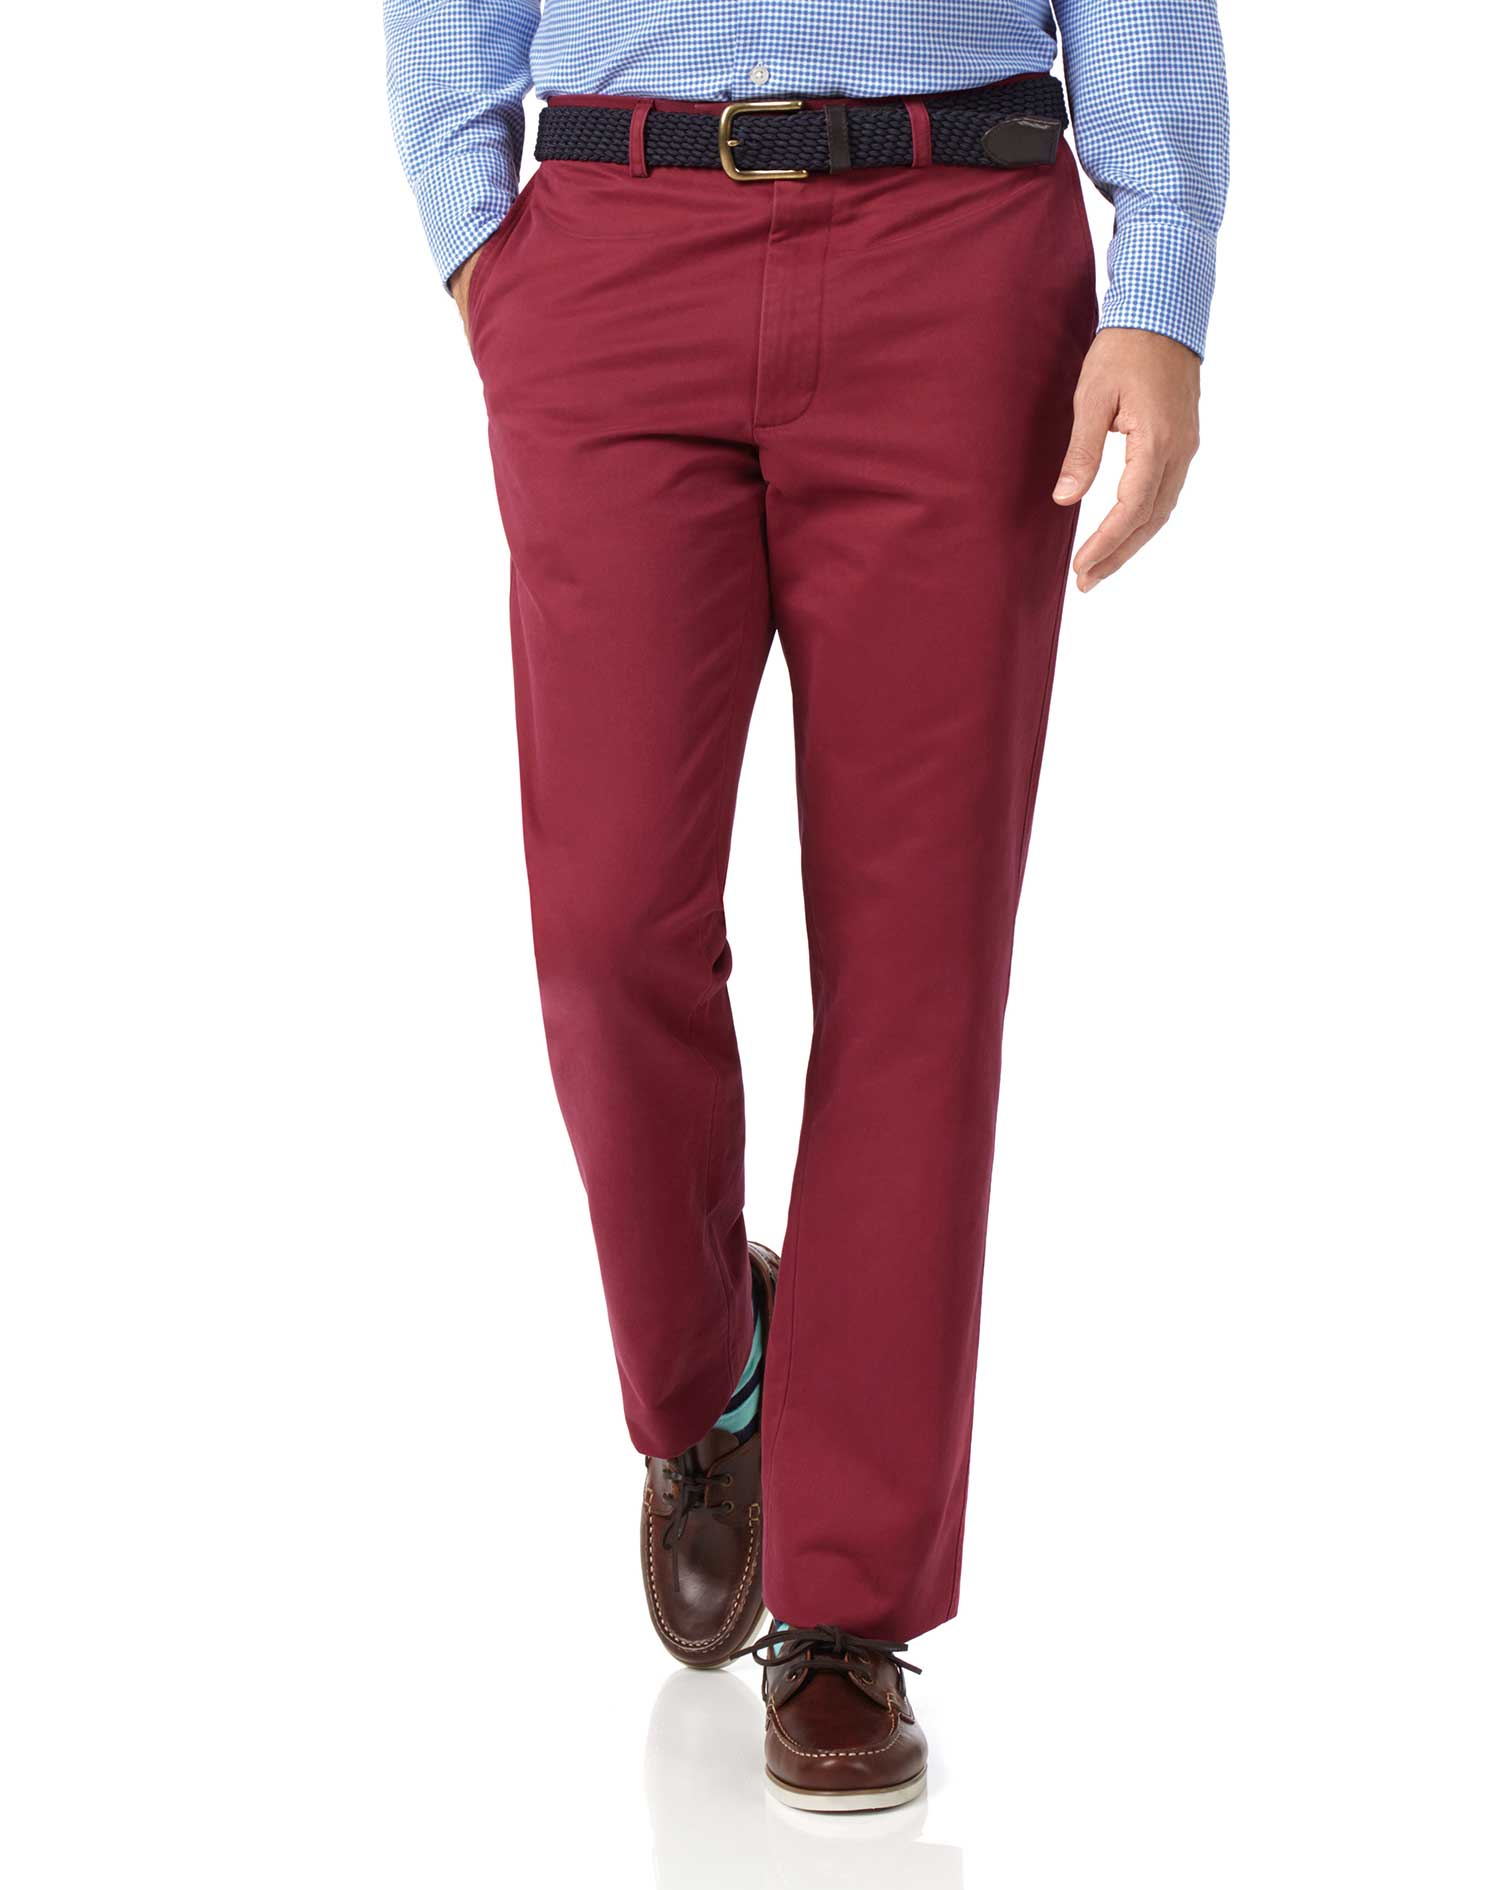 Red Classic Fit Flat Front Washed Cotton Chino Trousers Size W38 L32 by Charles Tyrwhitt